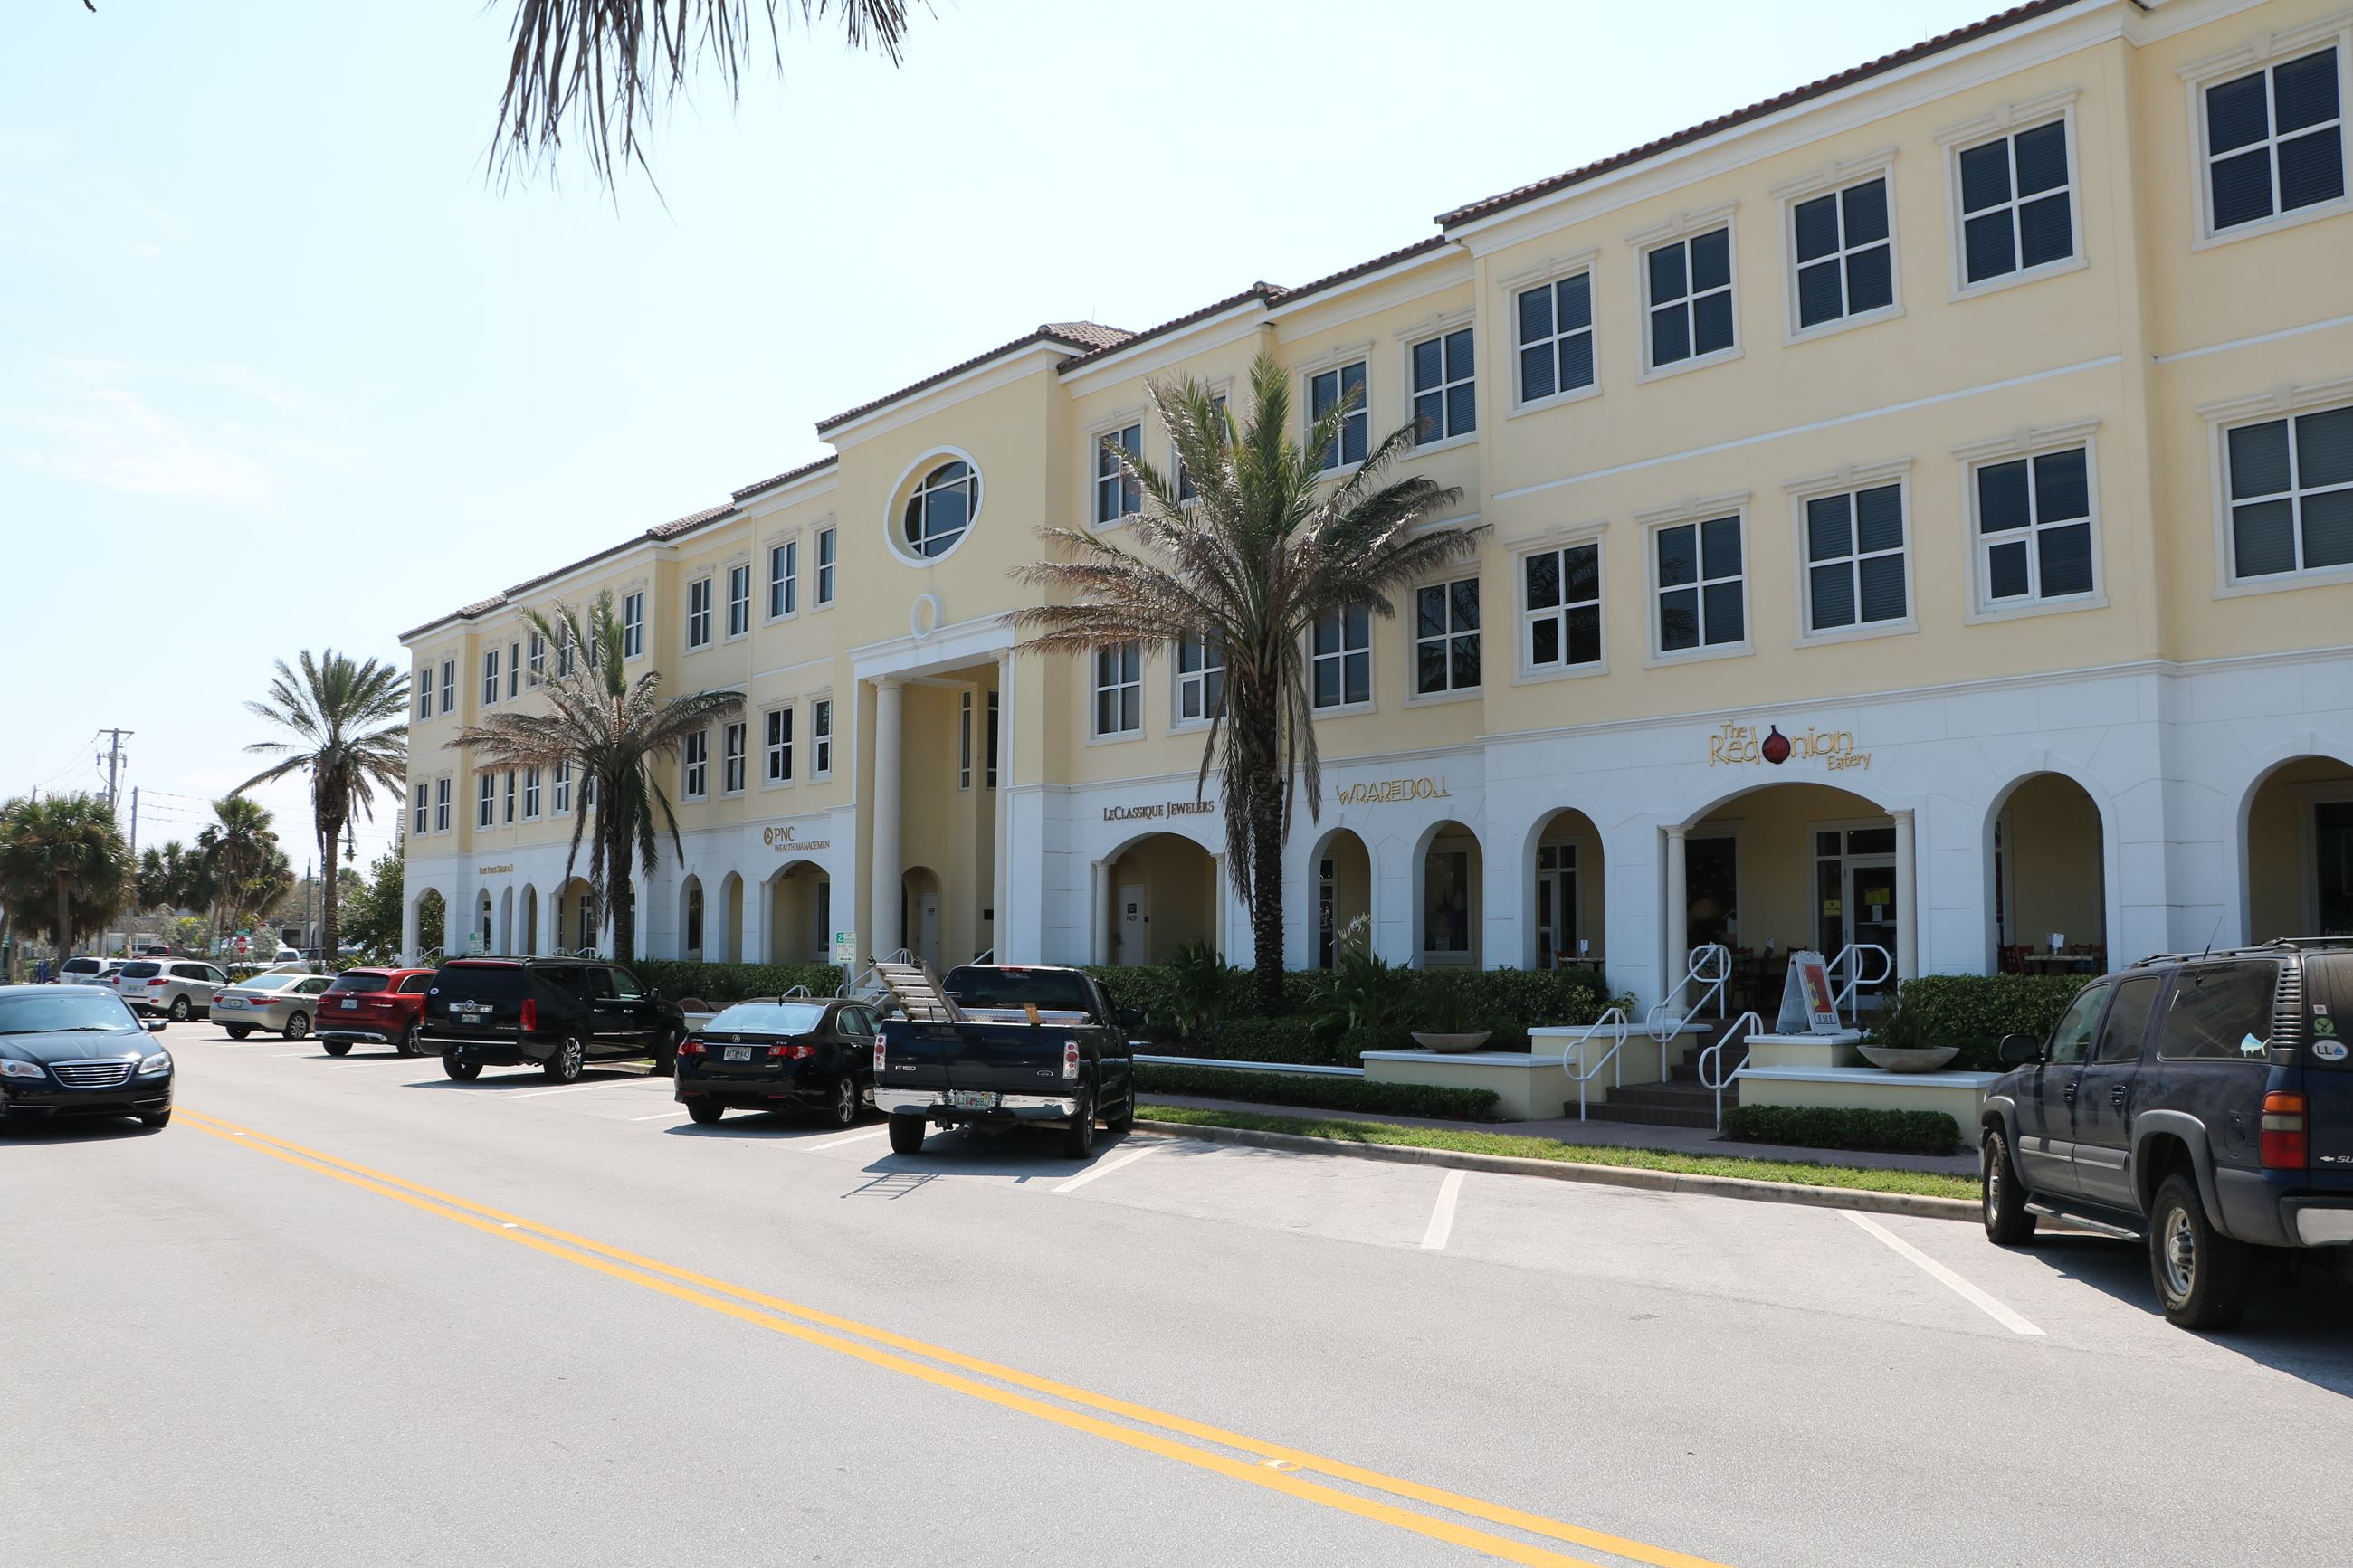 photo of ocean drive building